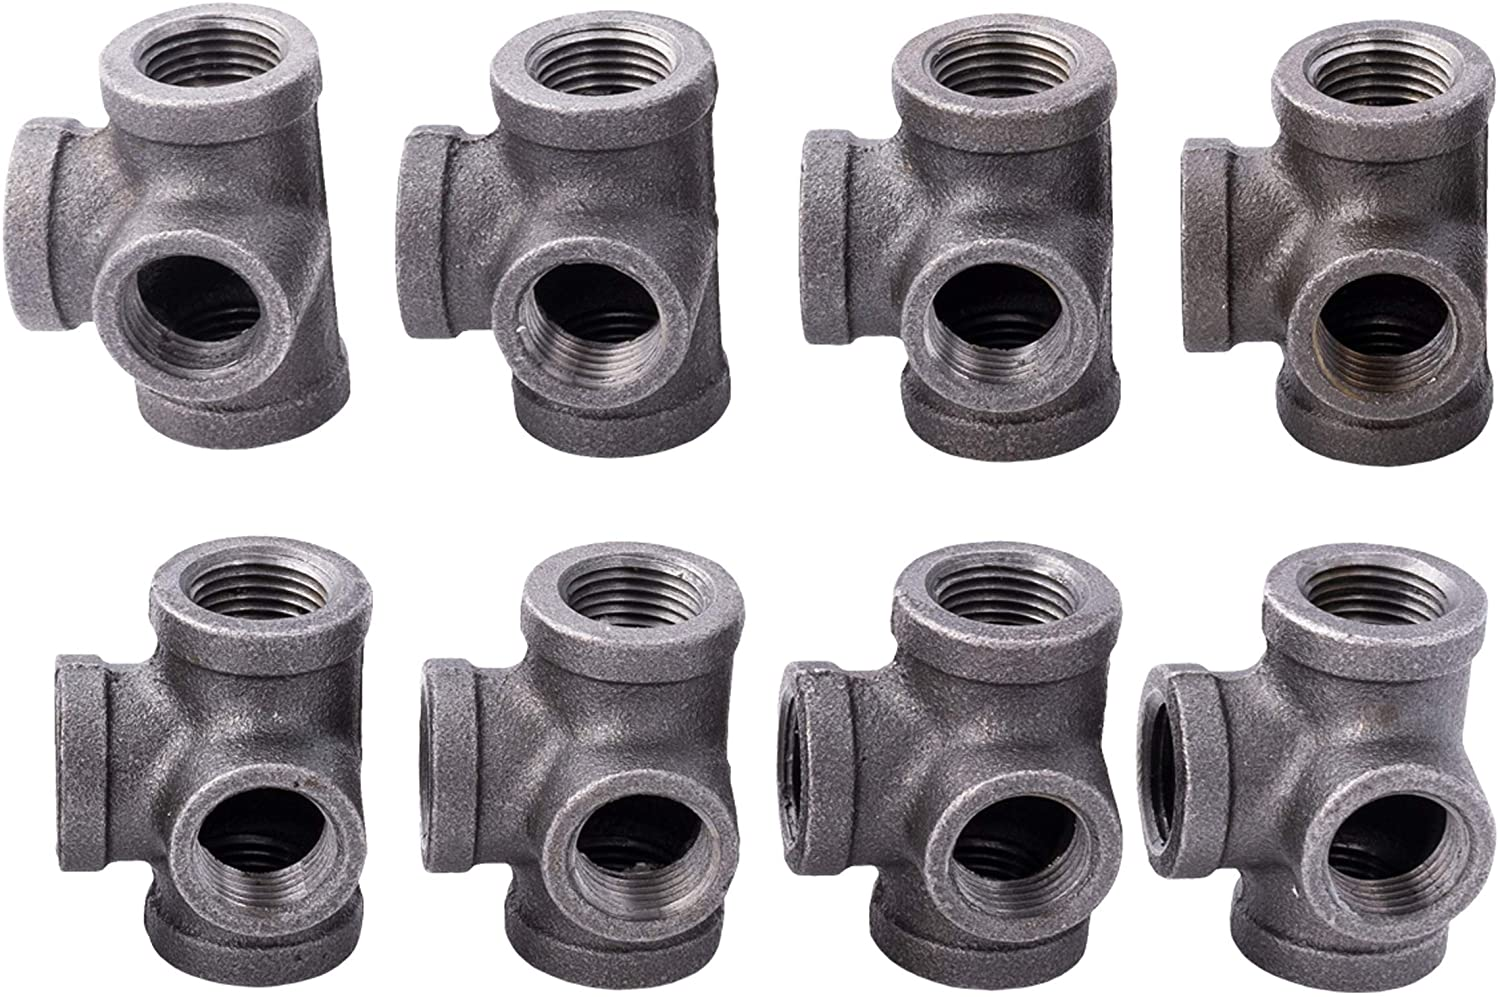 1/2 Inch Side Outlet Tee (4-Way) Industrial Cast Iron Pipe Fitting 8 Pack by Pipe Decor, Pipe Components For Building Tables, Chairs, Shelving, and Custom Furniture, Fits Half Inch Pipes, Eight Pack